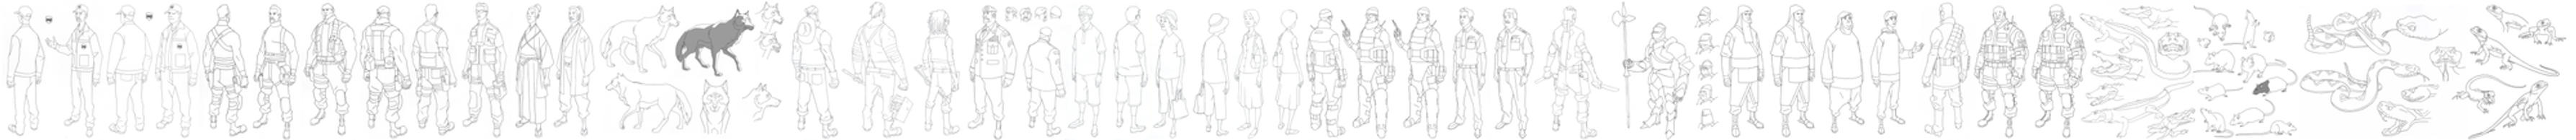 G.I. Joe Renegades Characters by dusty-abell